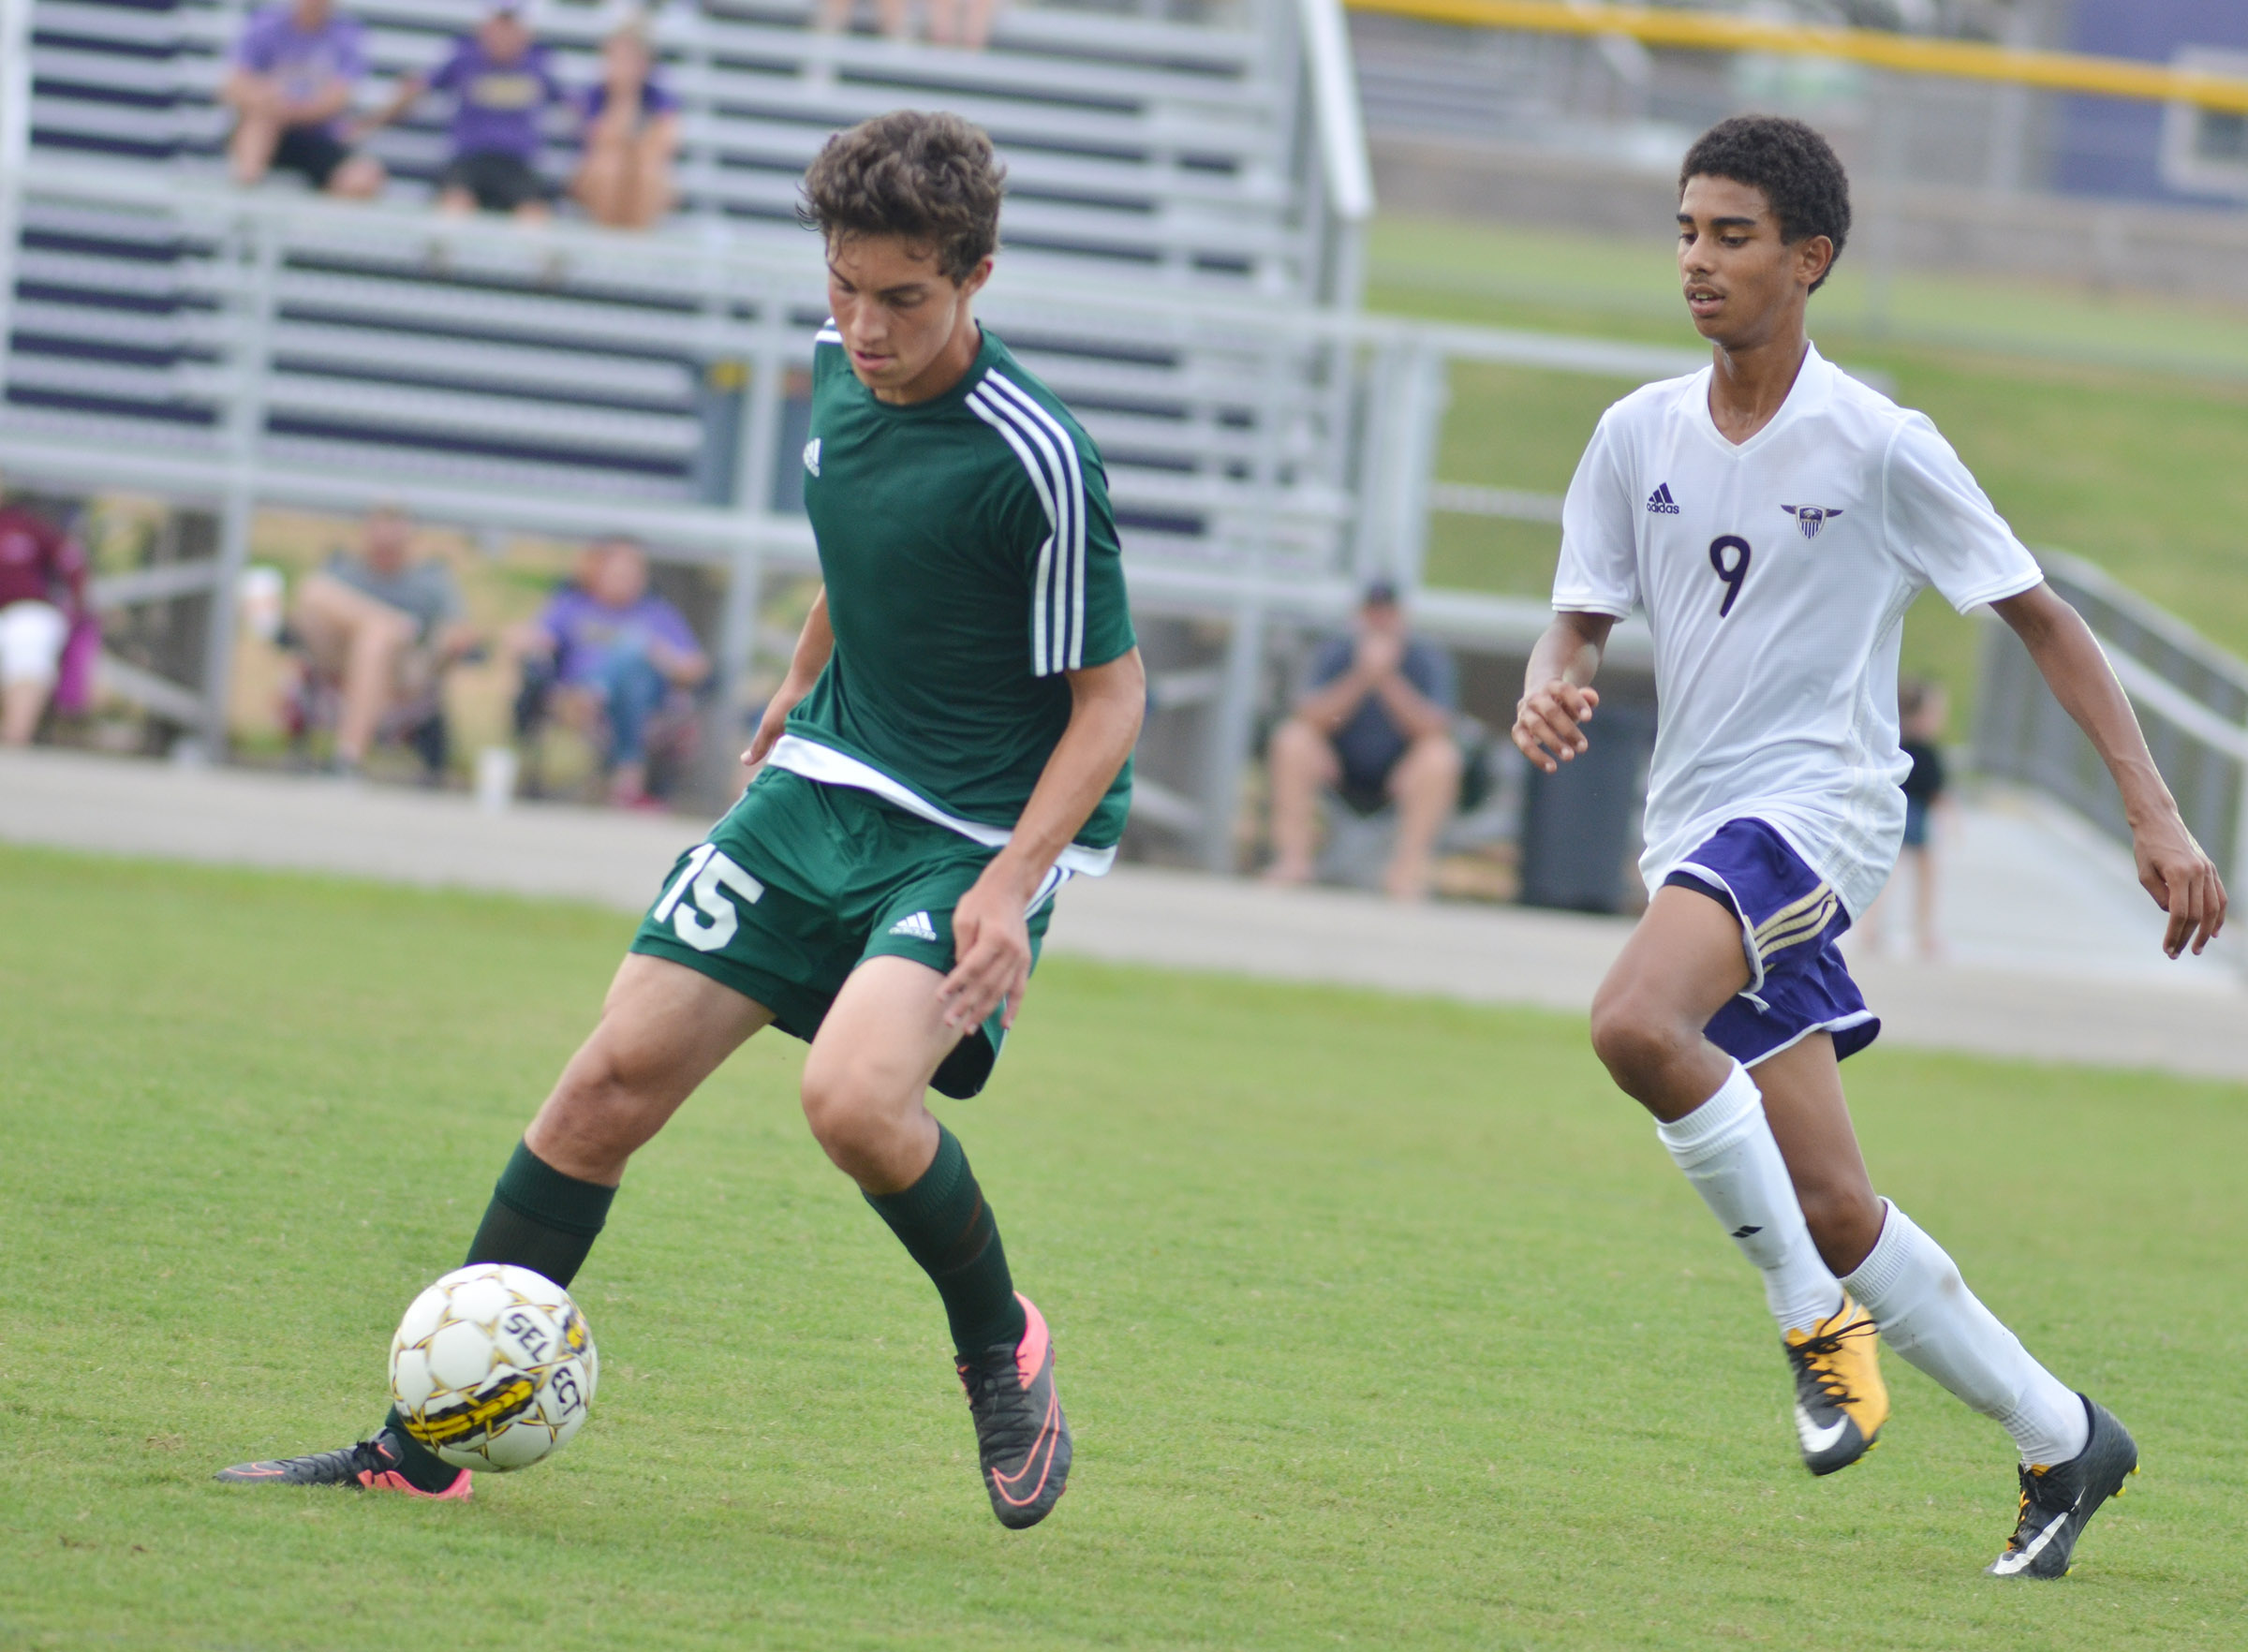 CHS sophomore David Silva plays defense.